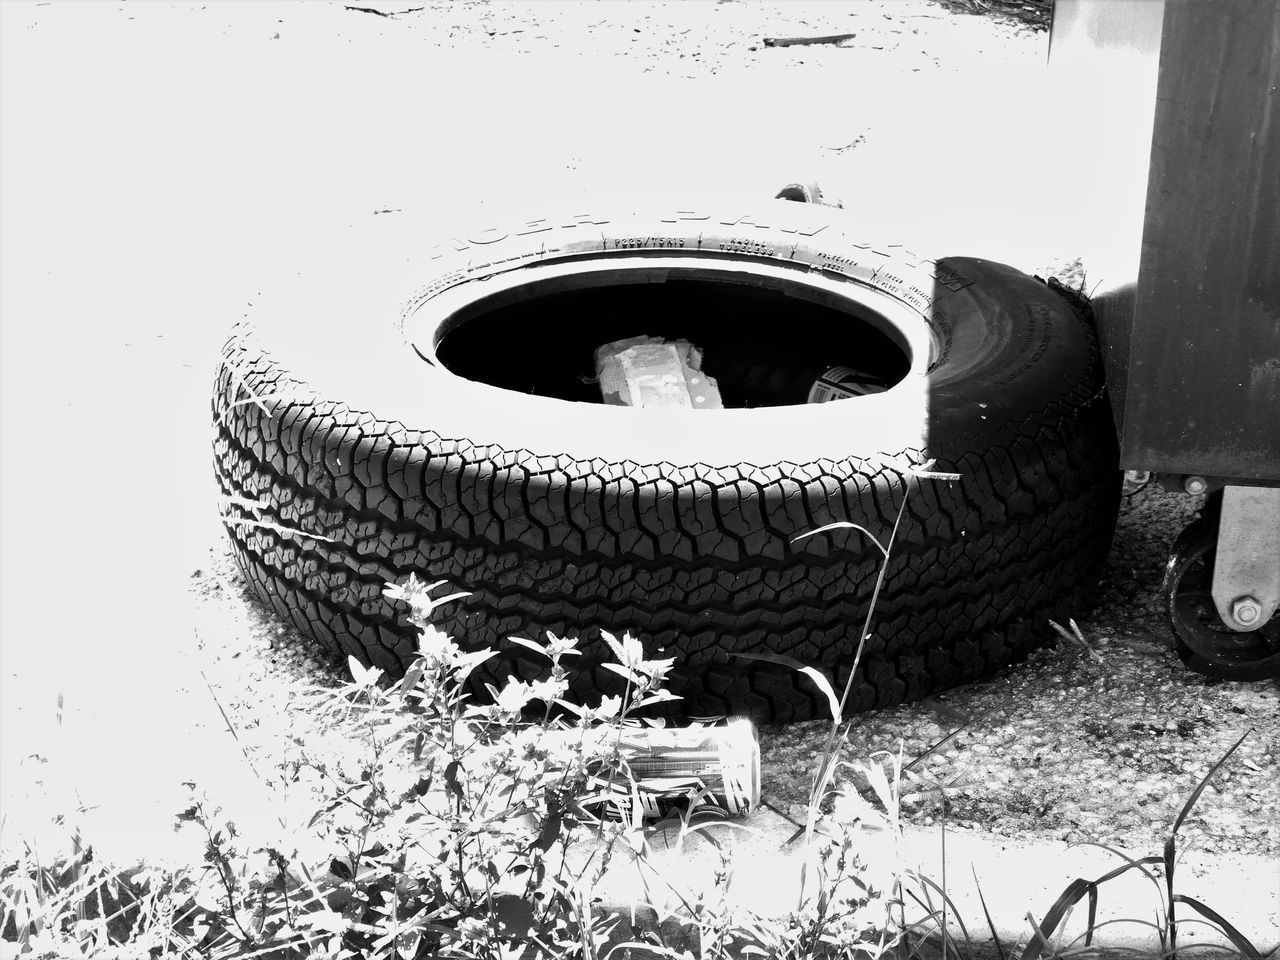 Monochrome Photography Blackandwhite Darkness And Light Outdoors Tire Trash Dumpster Odd Strange Random Acts Of Photography Notes From The Underground Light And Shadow On The Road Circles And Holes Littering Rubbish Waste Waste Management One Mans Trash Is Another Mans Treasure Circle Unwanted Textures And Surfaces Streetphotography Garbage